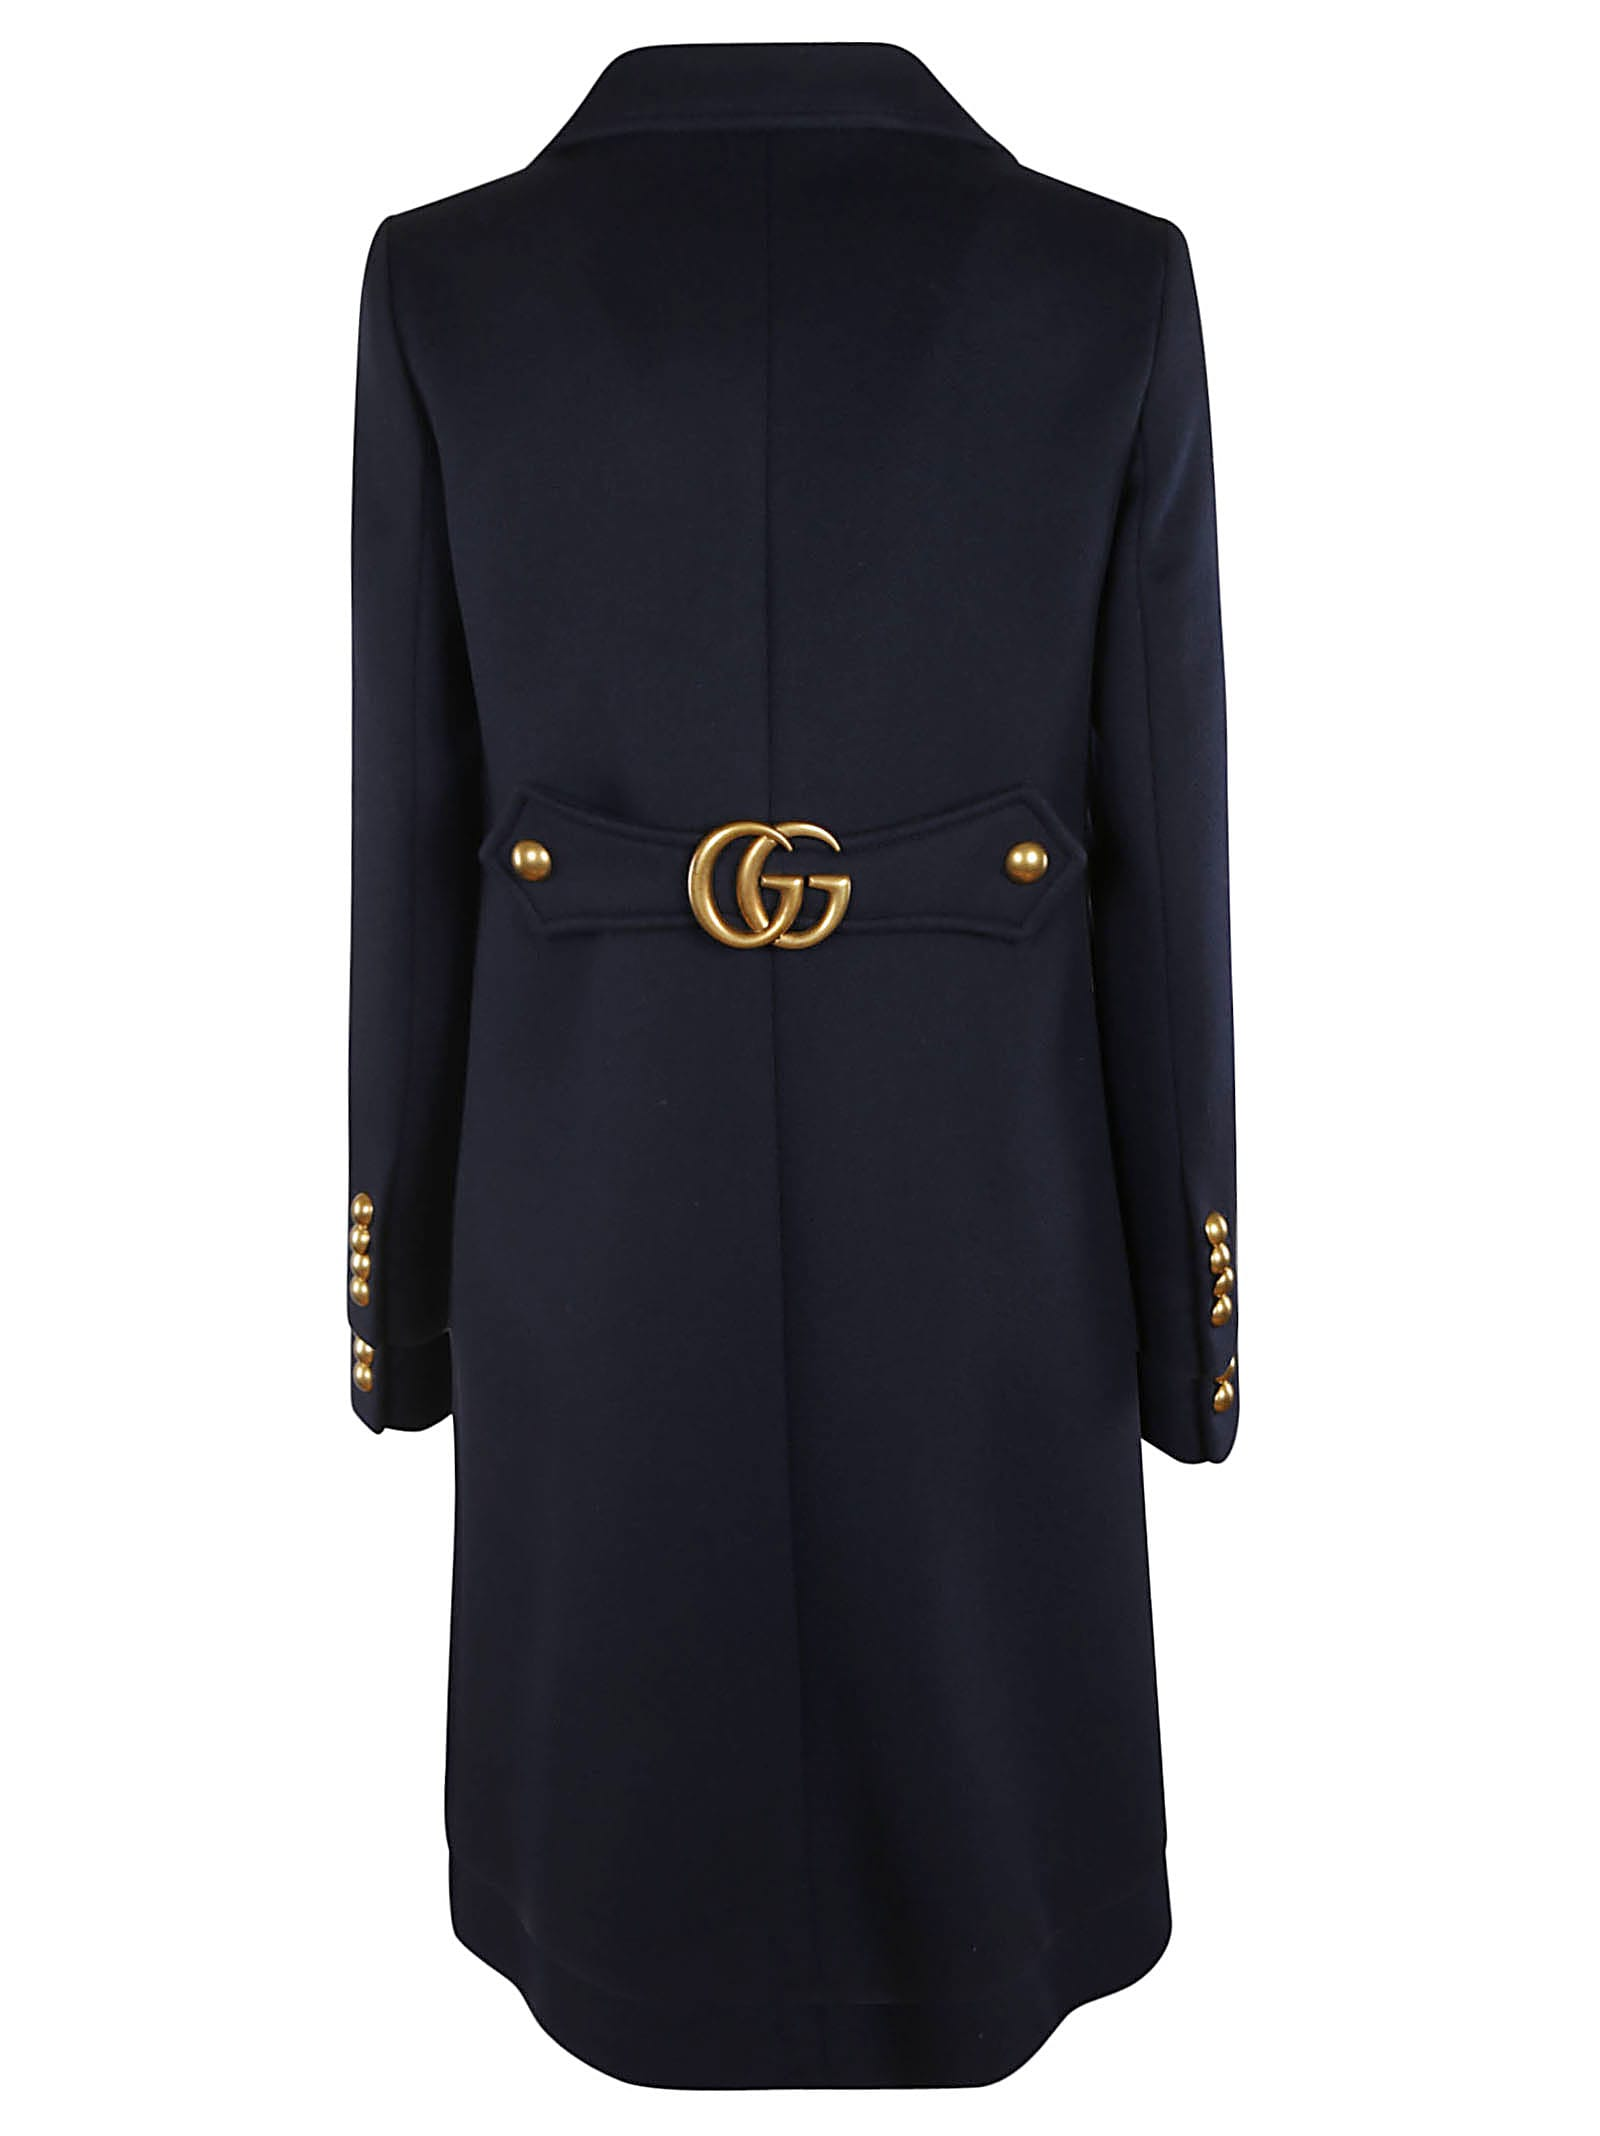 outlet store new specials outlet for sale Gucci Wool Coat